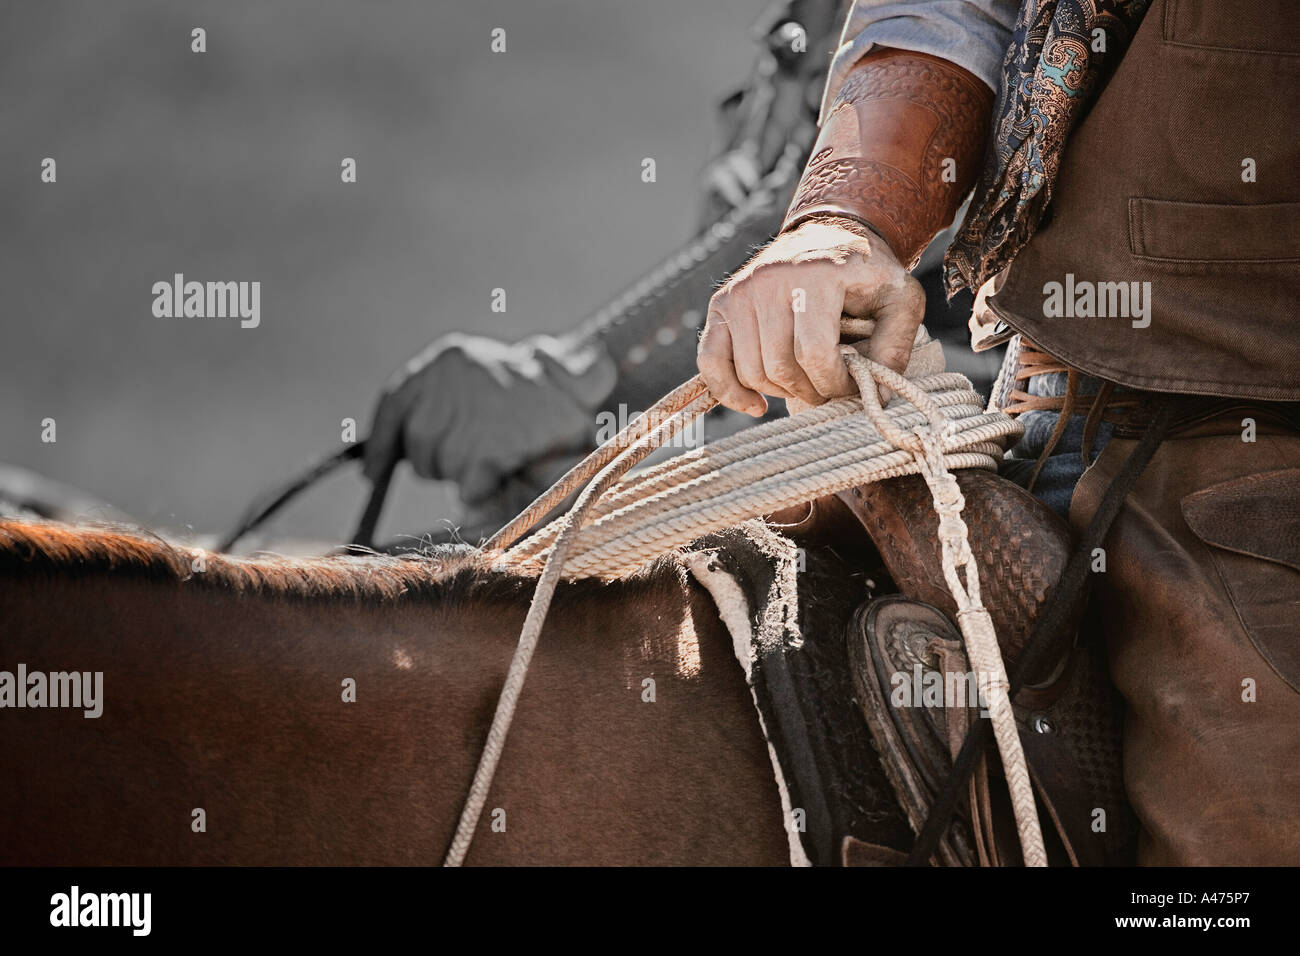 A Cowboy with lasso - Stock Image